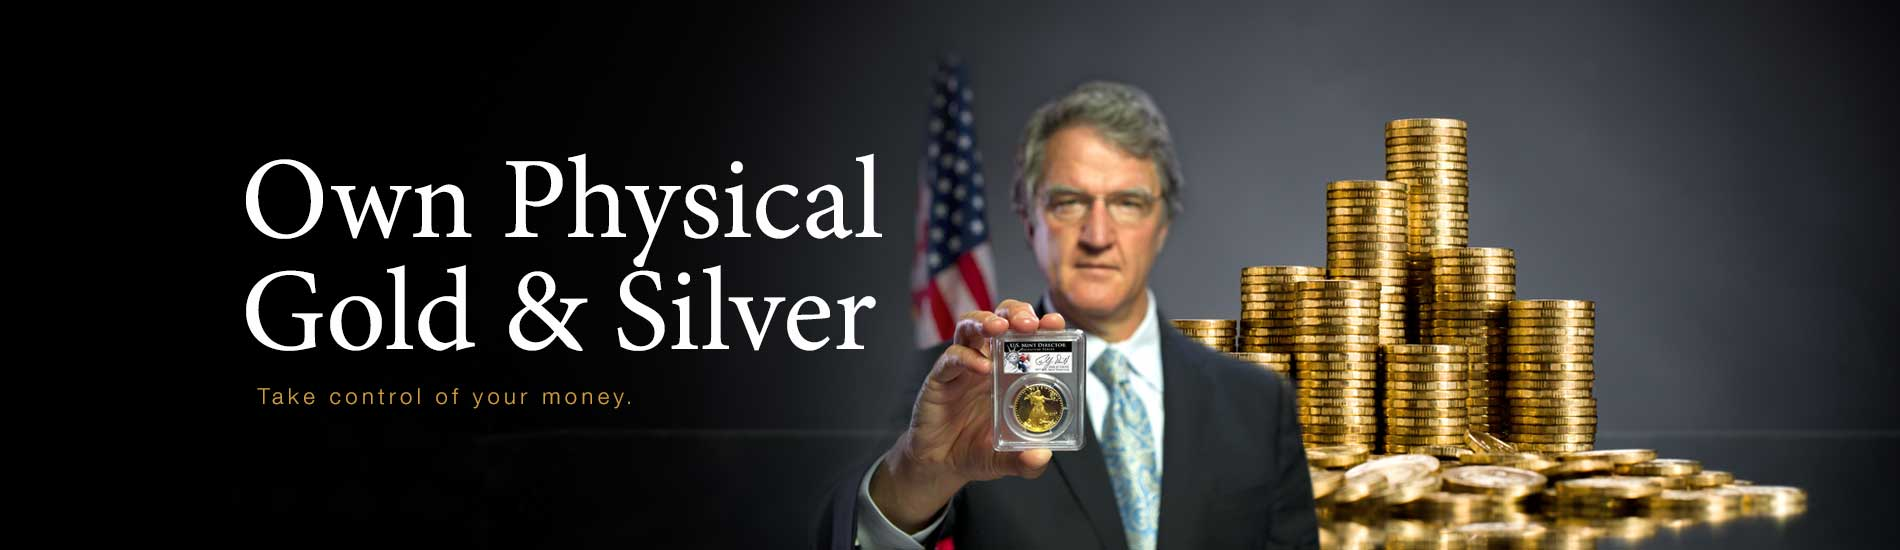 Philip Diehl holding a graded gold coin, a stack of gold coins behind him and the message Own Physical Gold & Silver